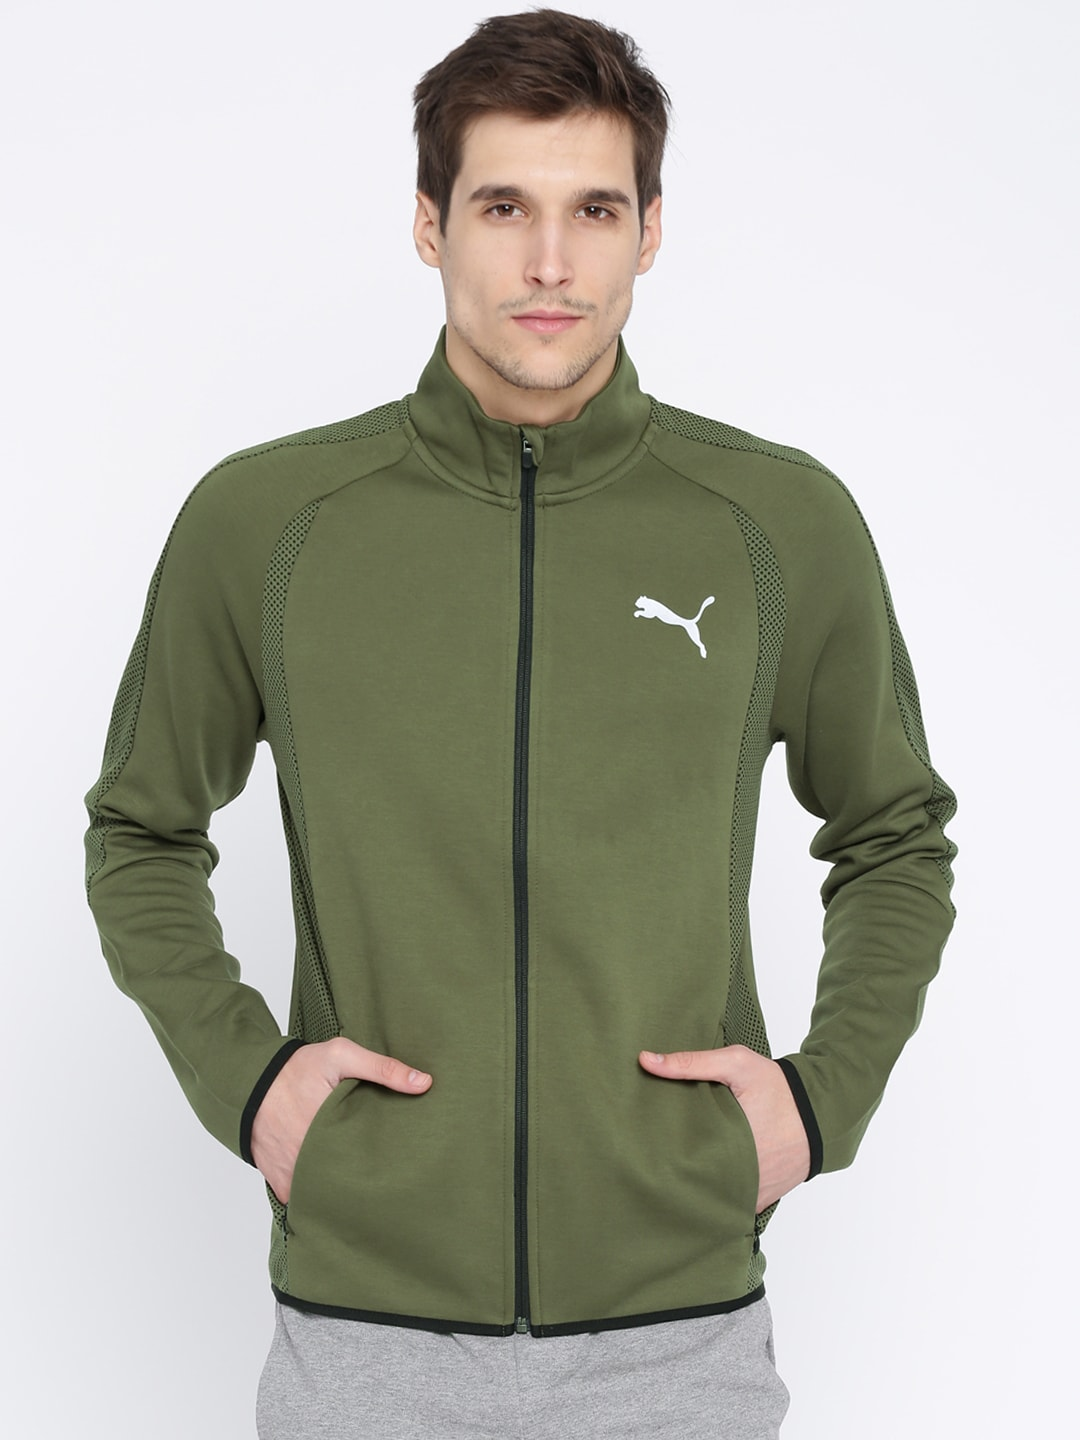 20c5ad624405 Puma Olive Jackets - Buy Puma Olive Jackets online in India